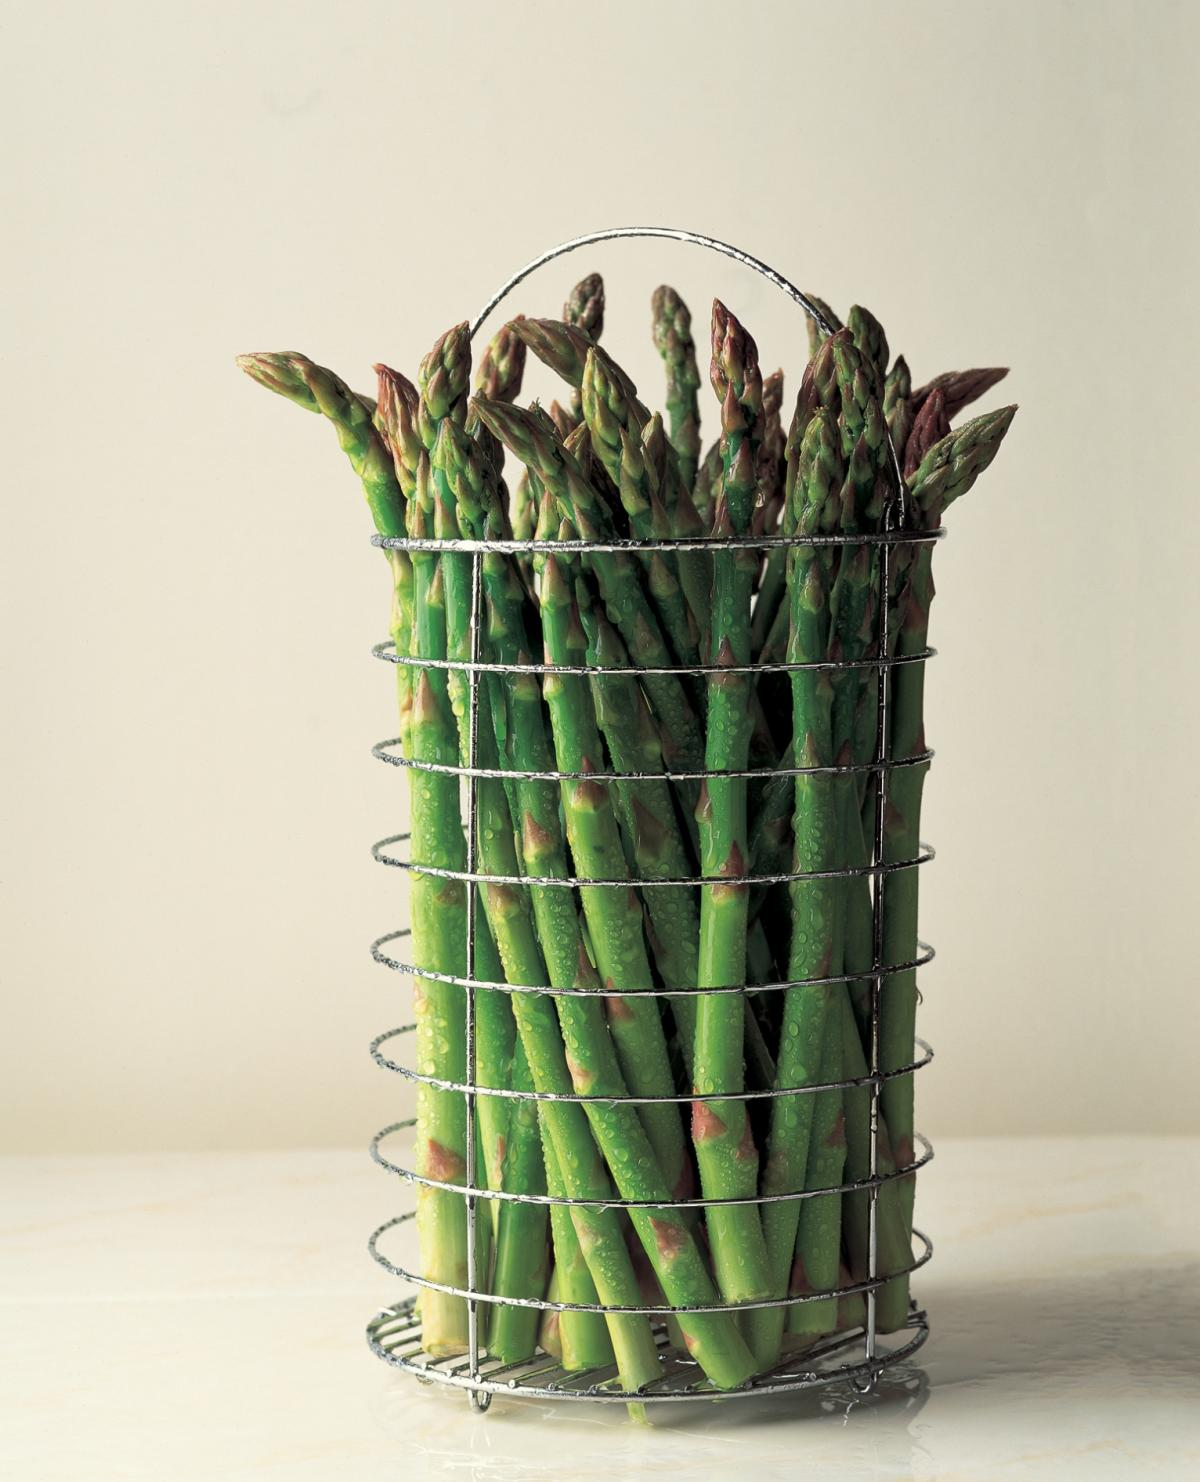 A picture of Delia's Asparagus recipes